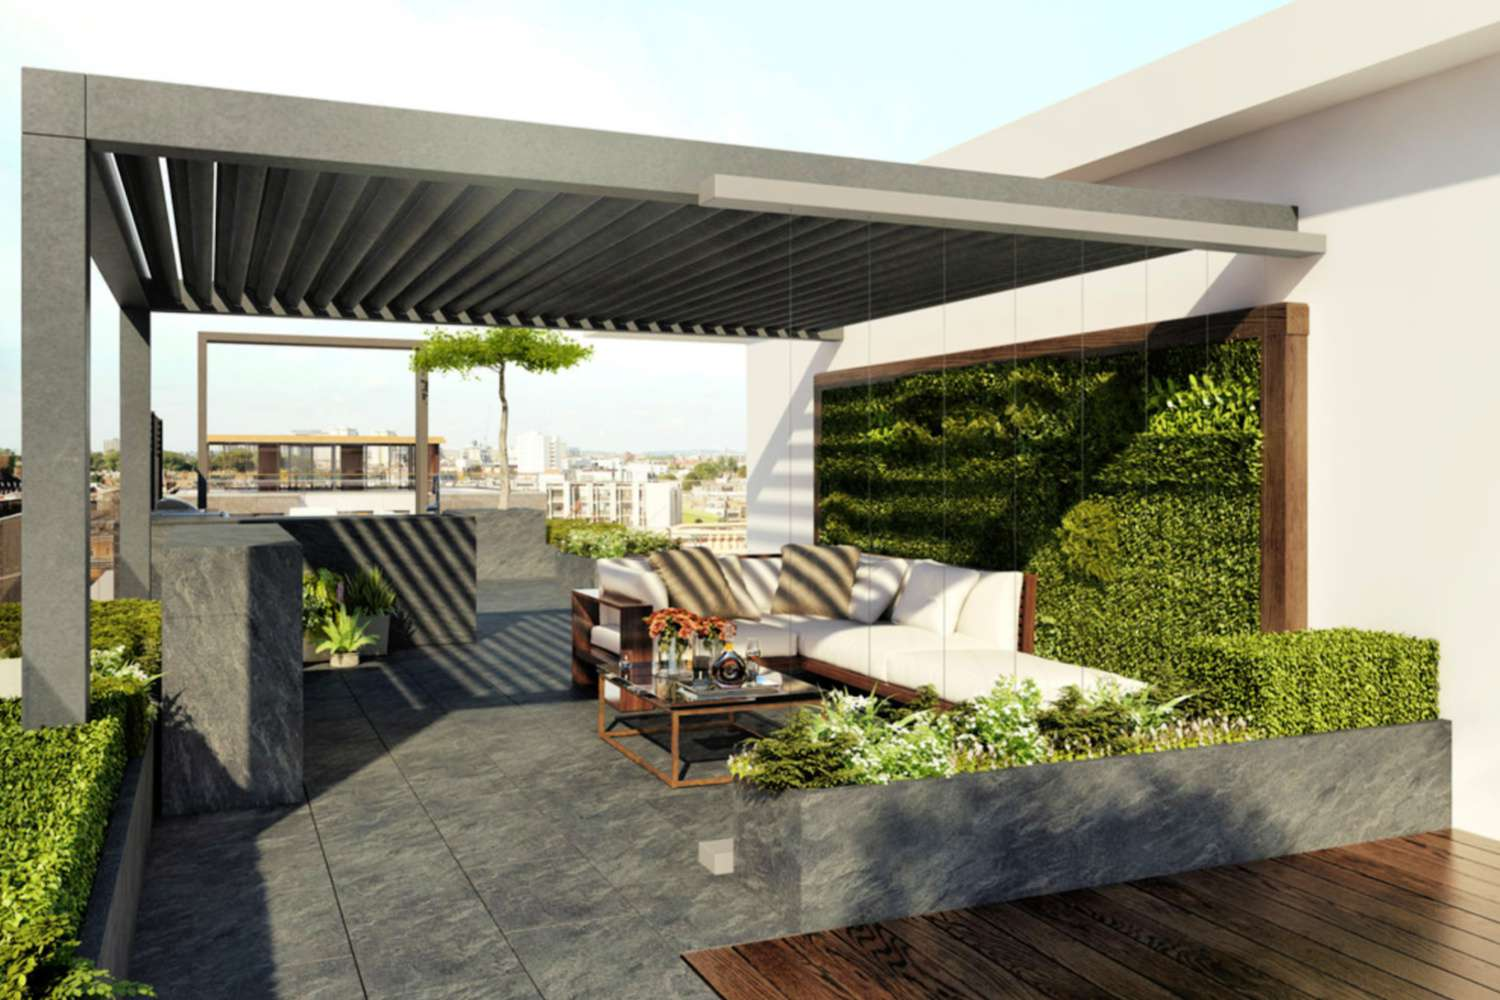 Green wall design in stone patio with canopy.